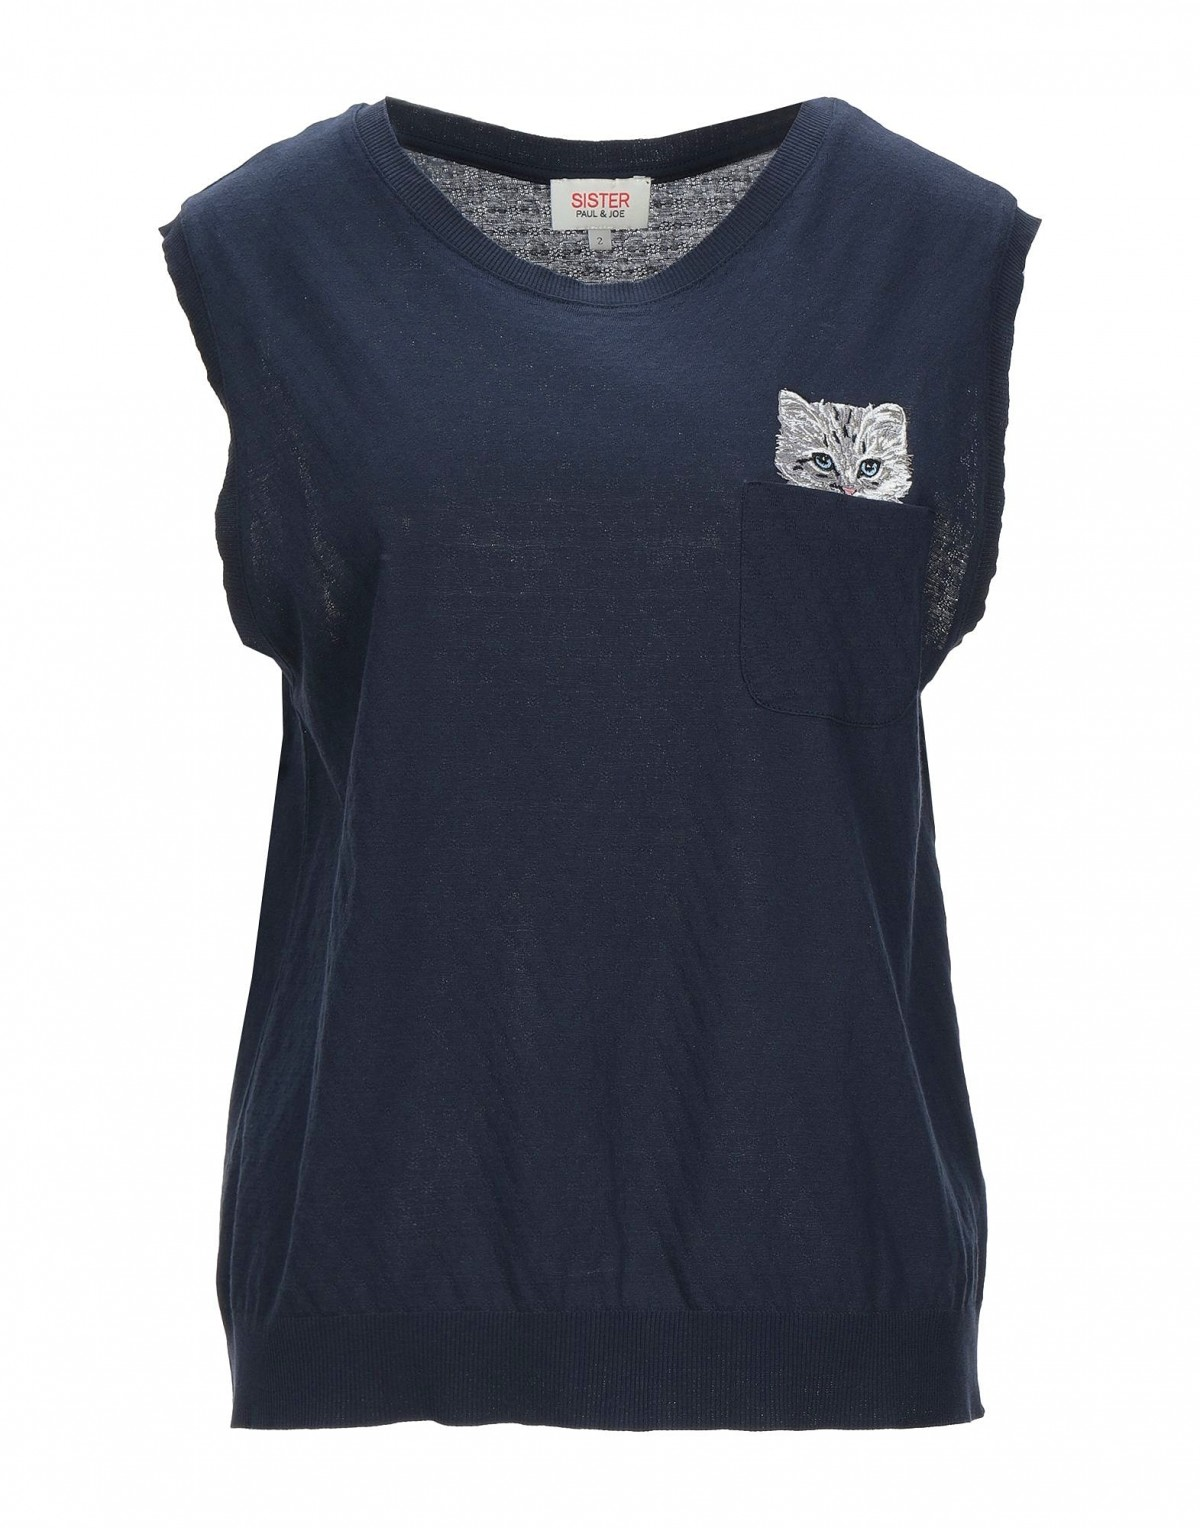 Women's T-shirt with a Cat